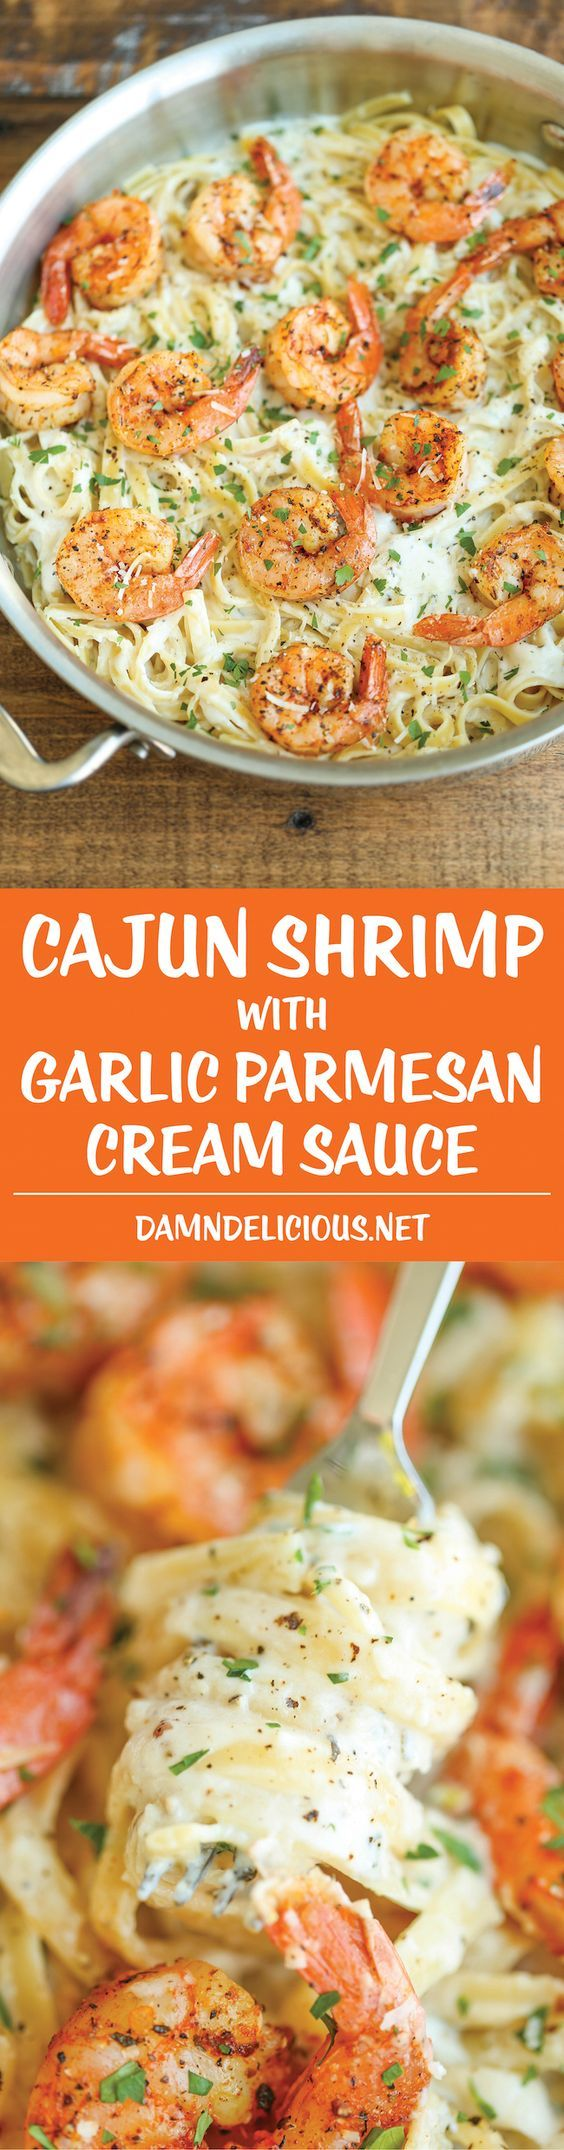 Cajun Shrimp with Garlic Parmesan Cream Sauce - The easiest weeknight meal with a homemade cream sauce that tastes a million times better than store-bought!: